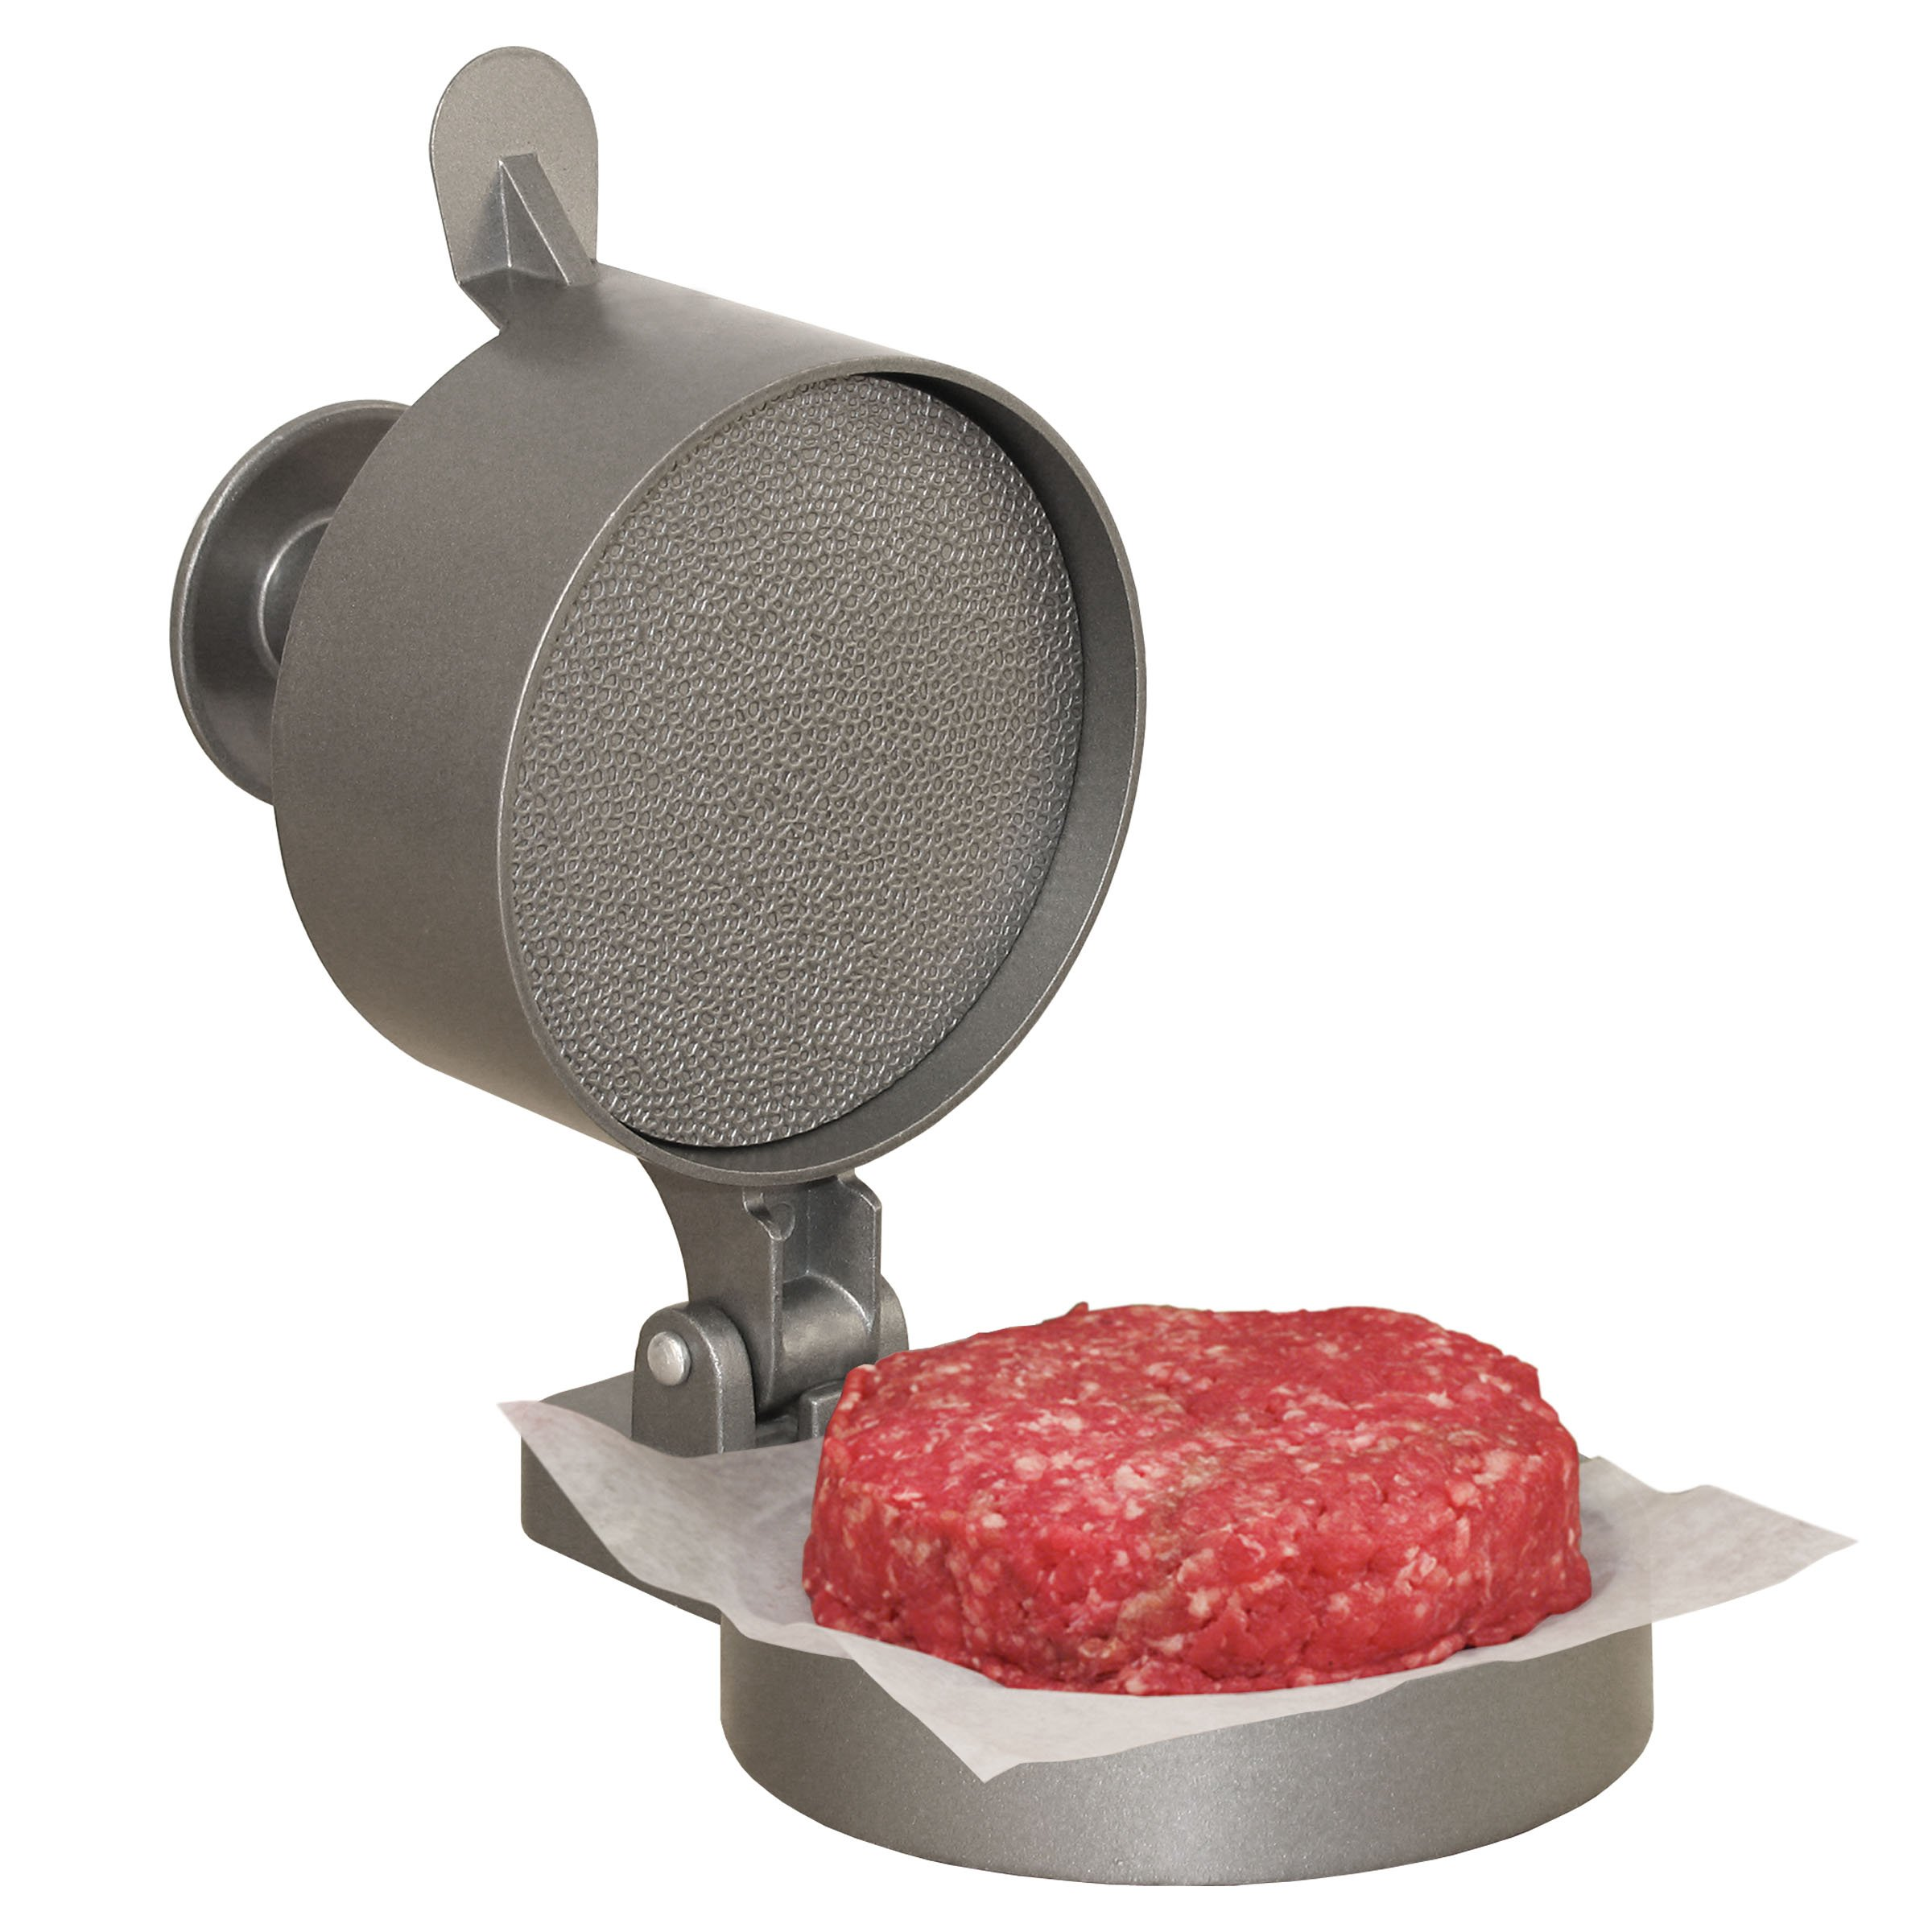 Weston Burger Express Hamburger Press with Patty Ejector (07-0310-W), Makes 4 1/2'' Patties, 1/4lb to 3/4lb by Weston